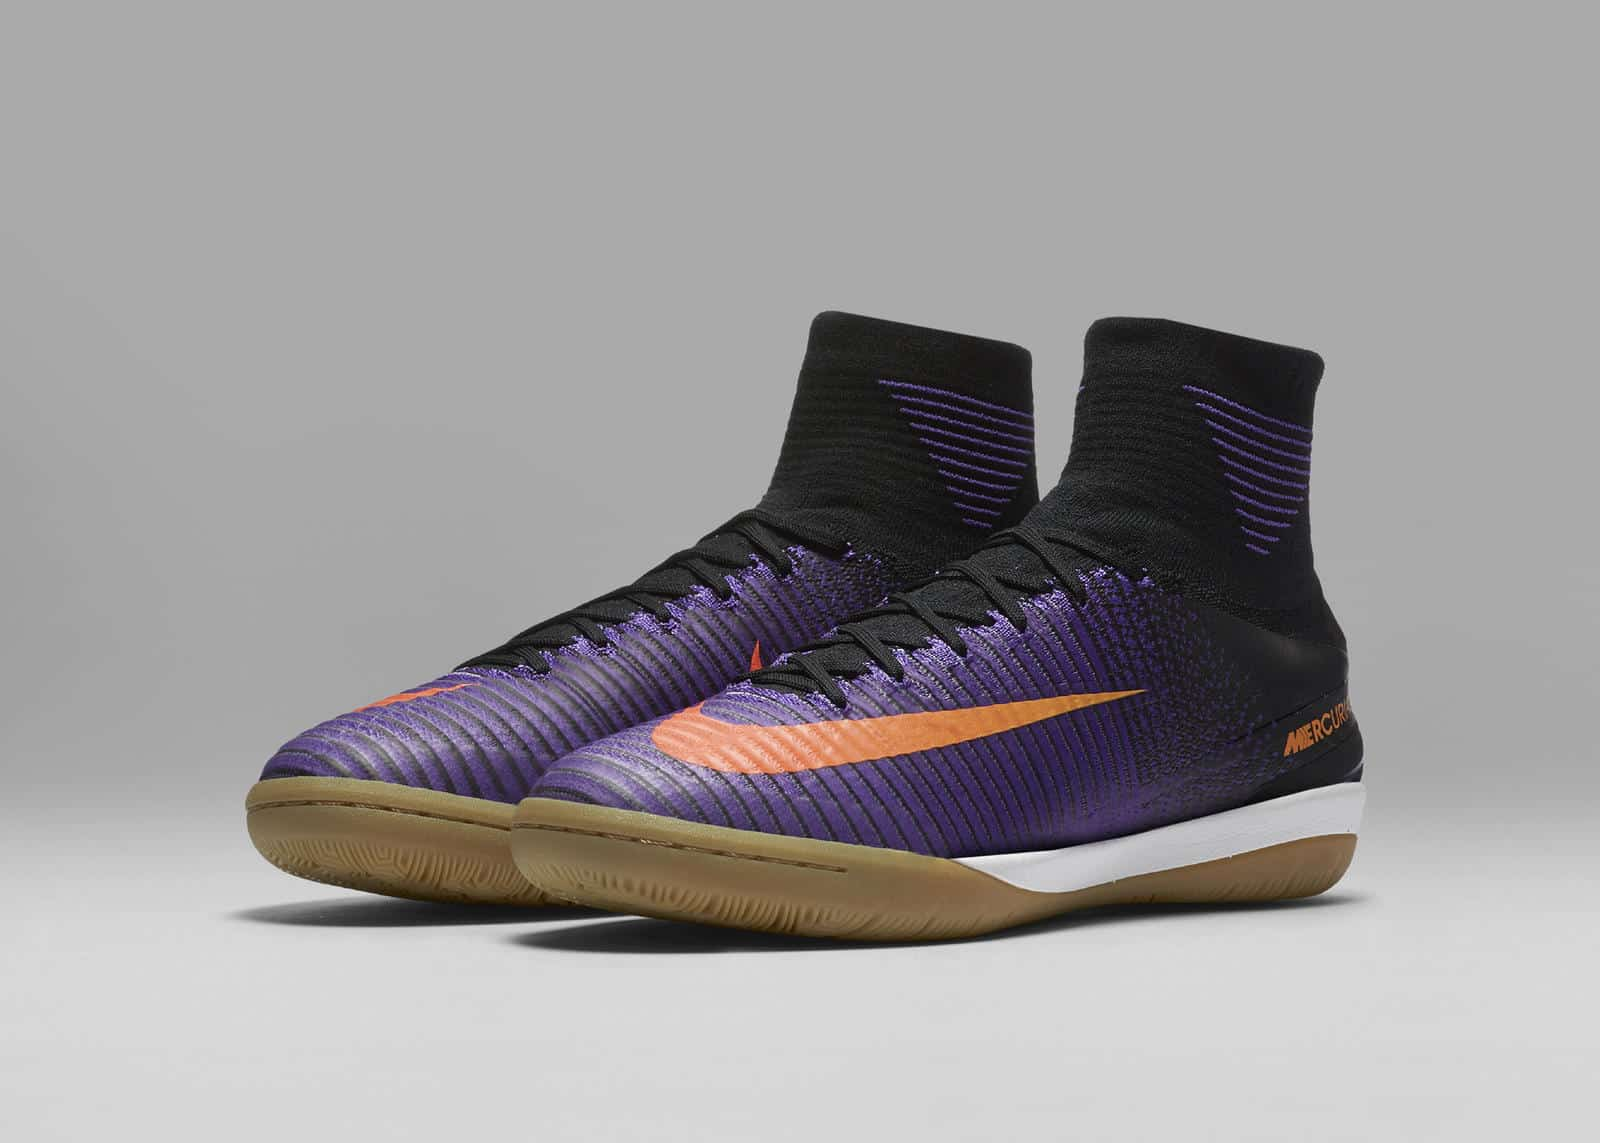 chaussure-football-nike-mercurialx-futsal-pack-floodlights-2016-4